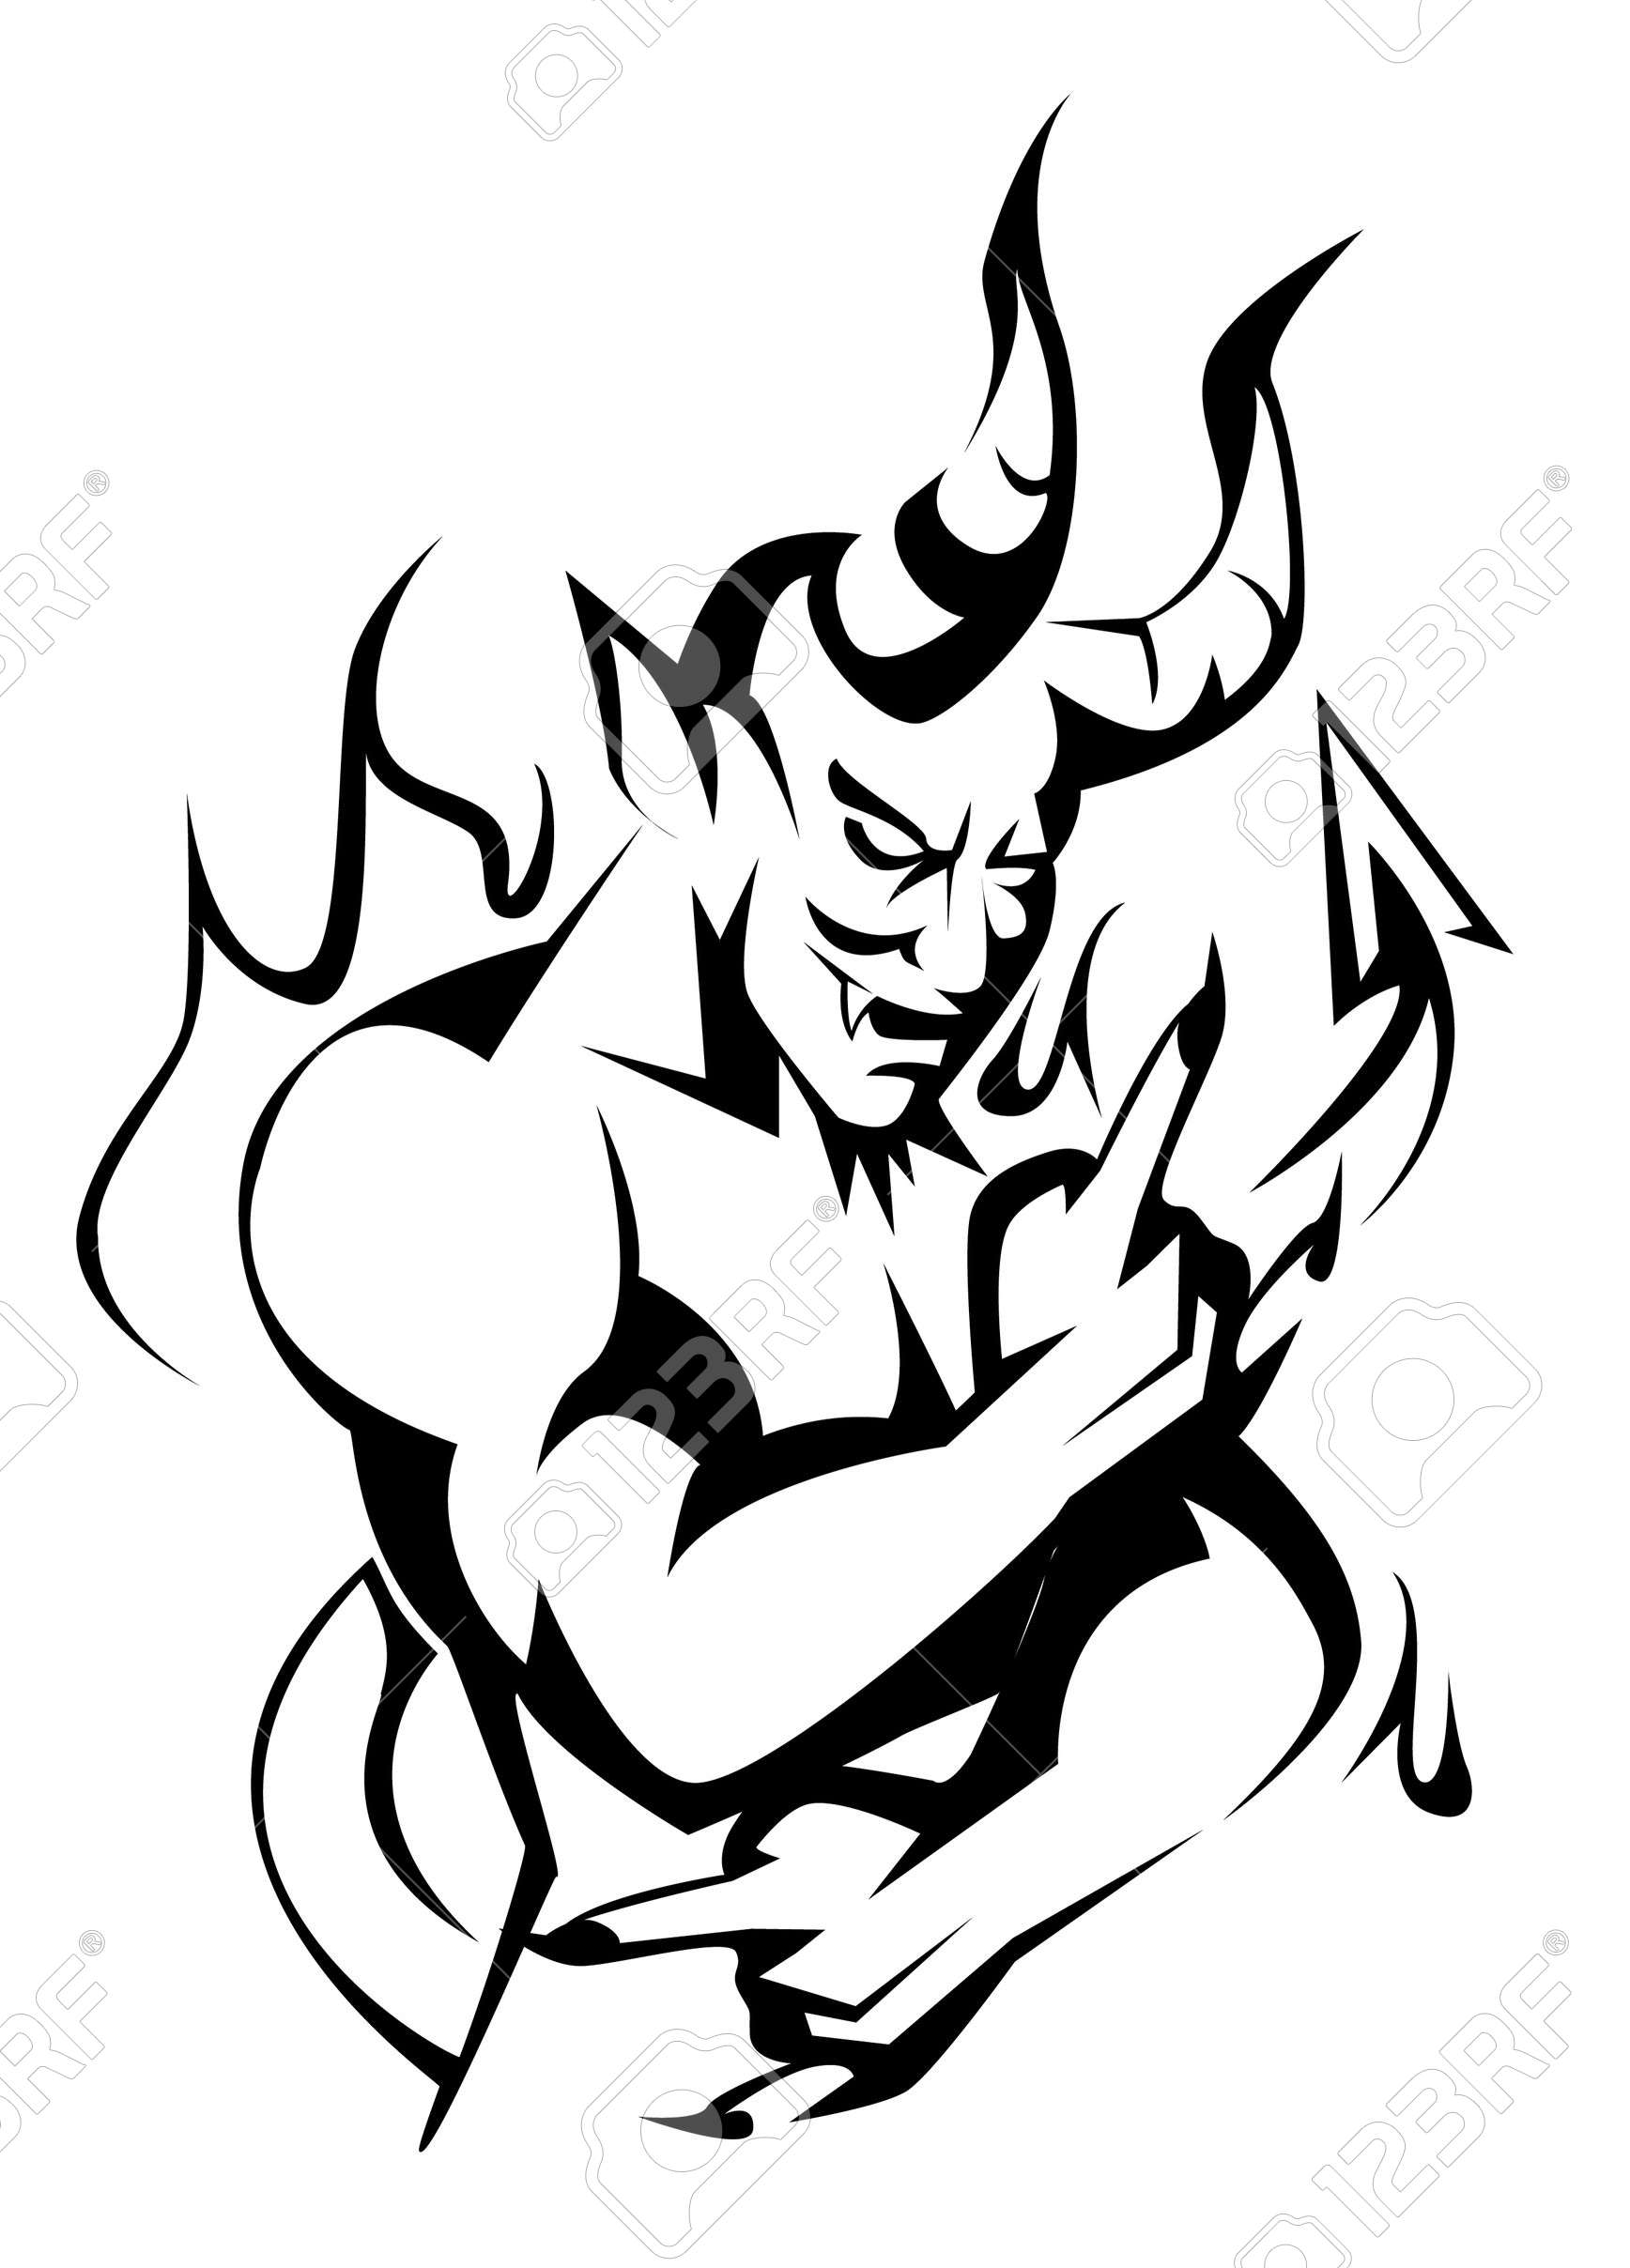 1736x2416 Image Result For Pencil Drawings Of Angels And Demons Pics